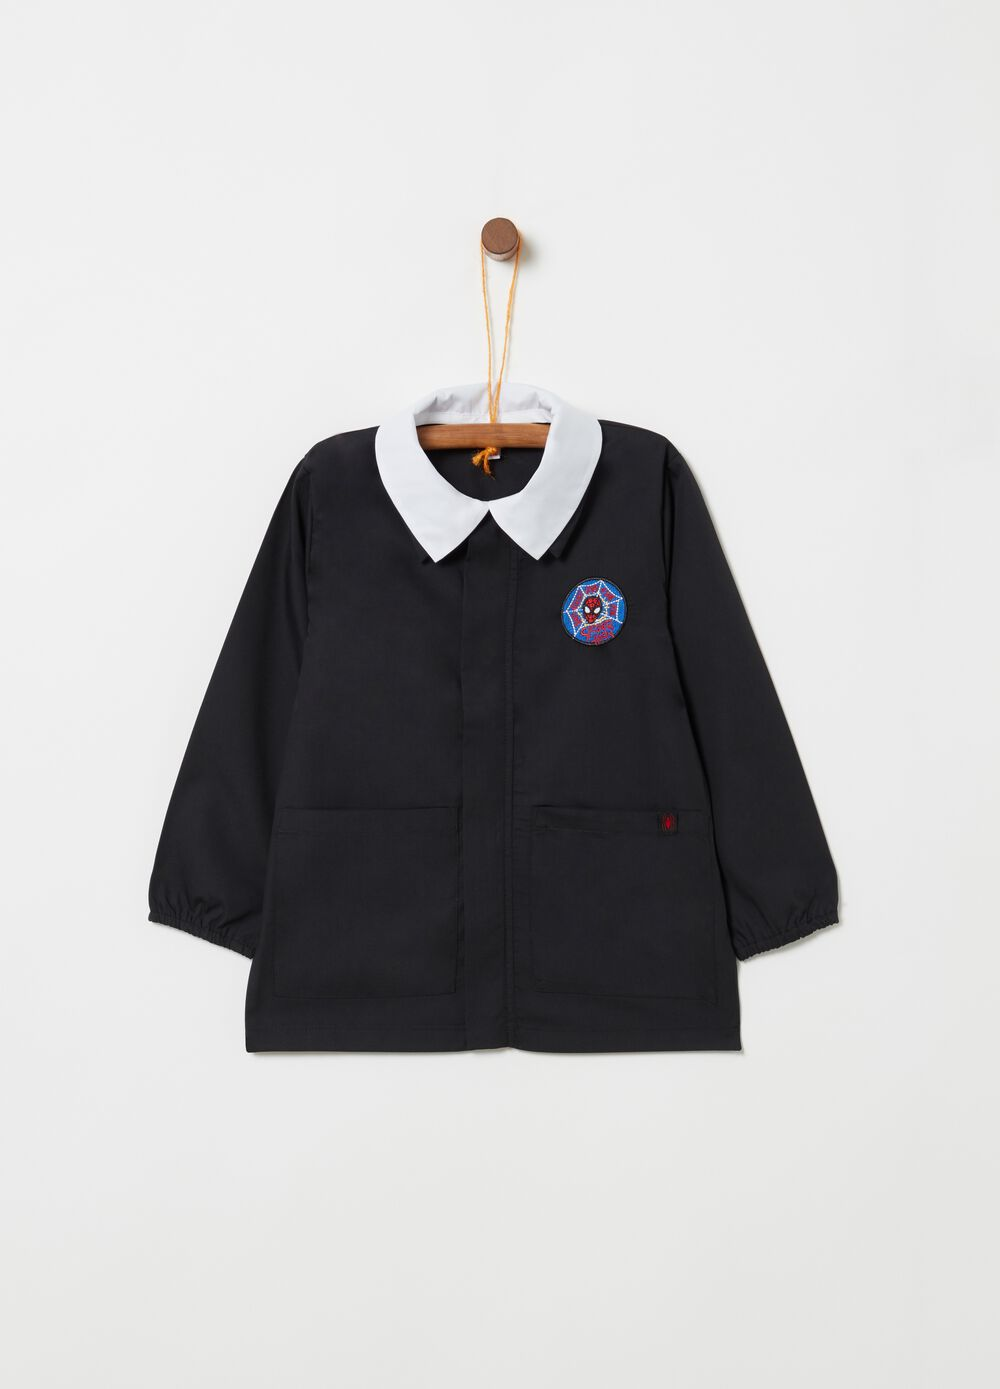 School smock with Spider-Man motif embroidery